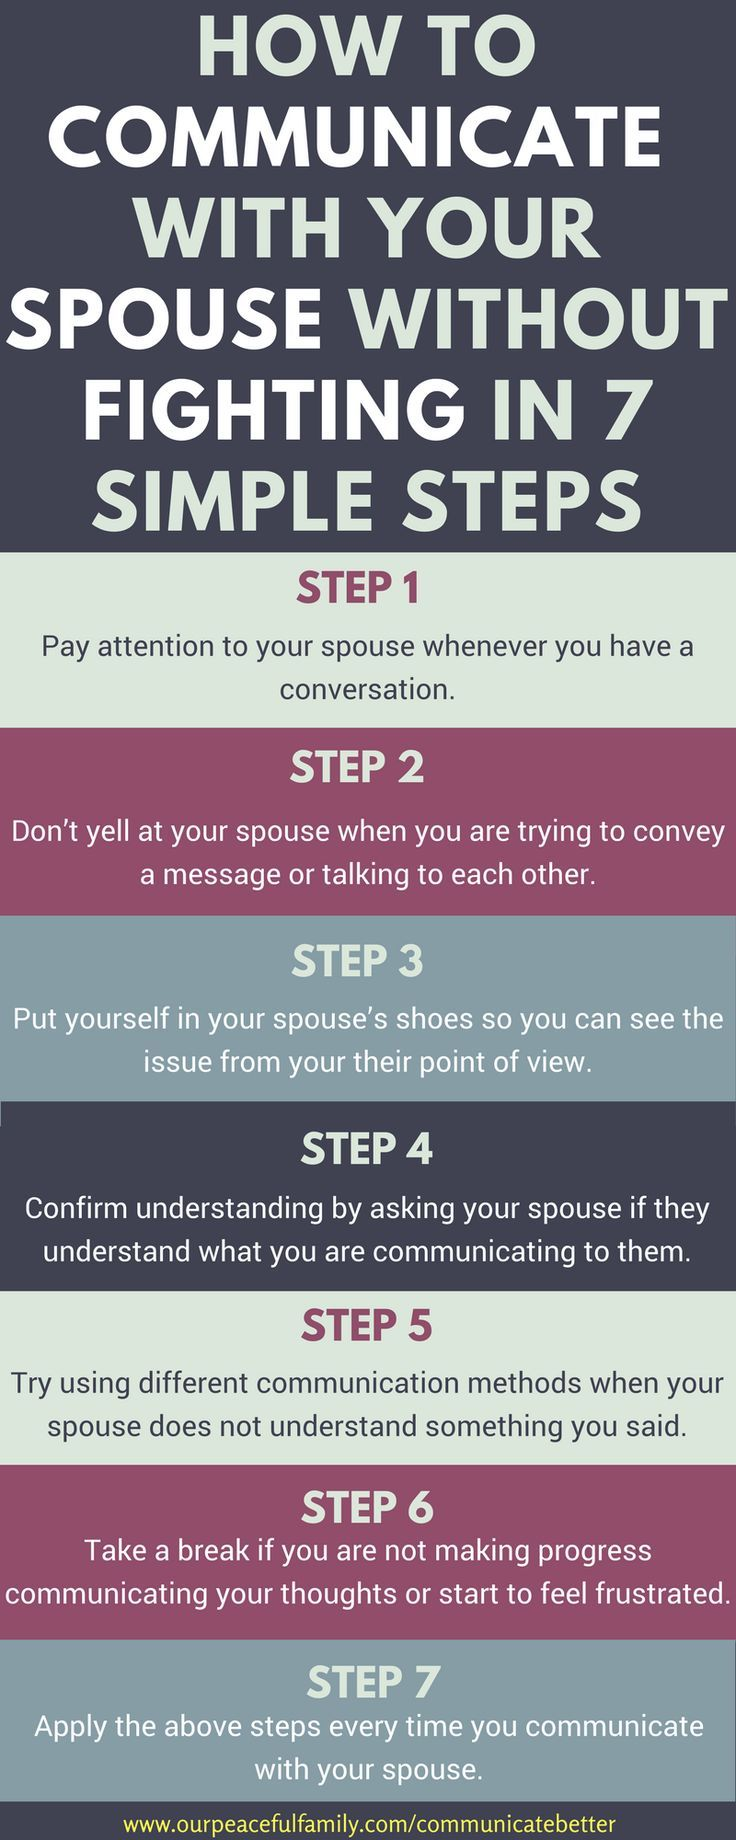 Best 25 Husband Wife Ideas On Pinterest  Wife And -5987